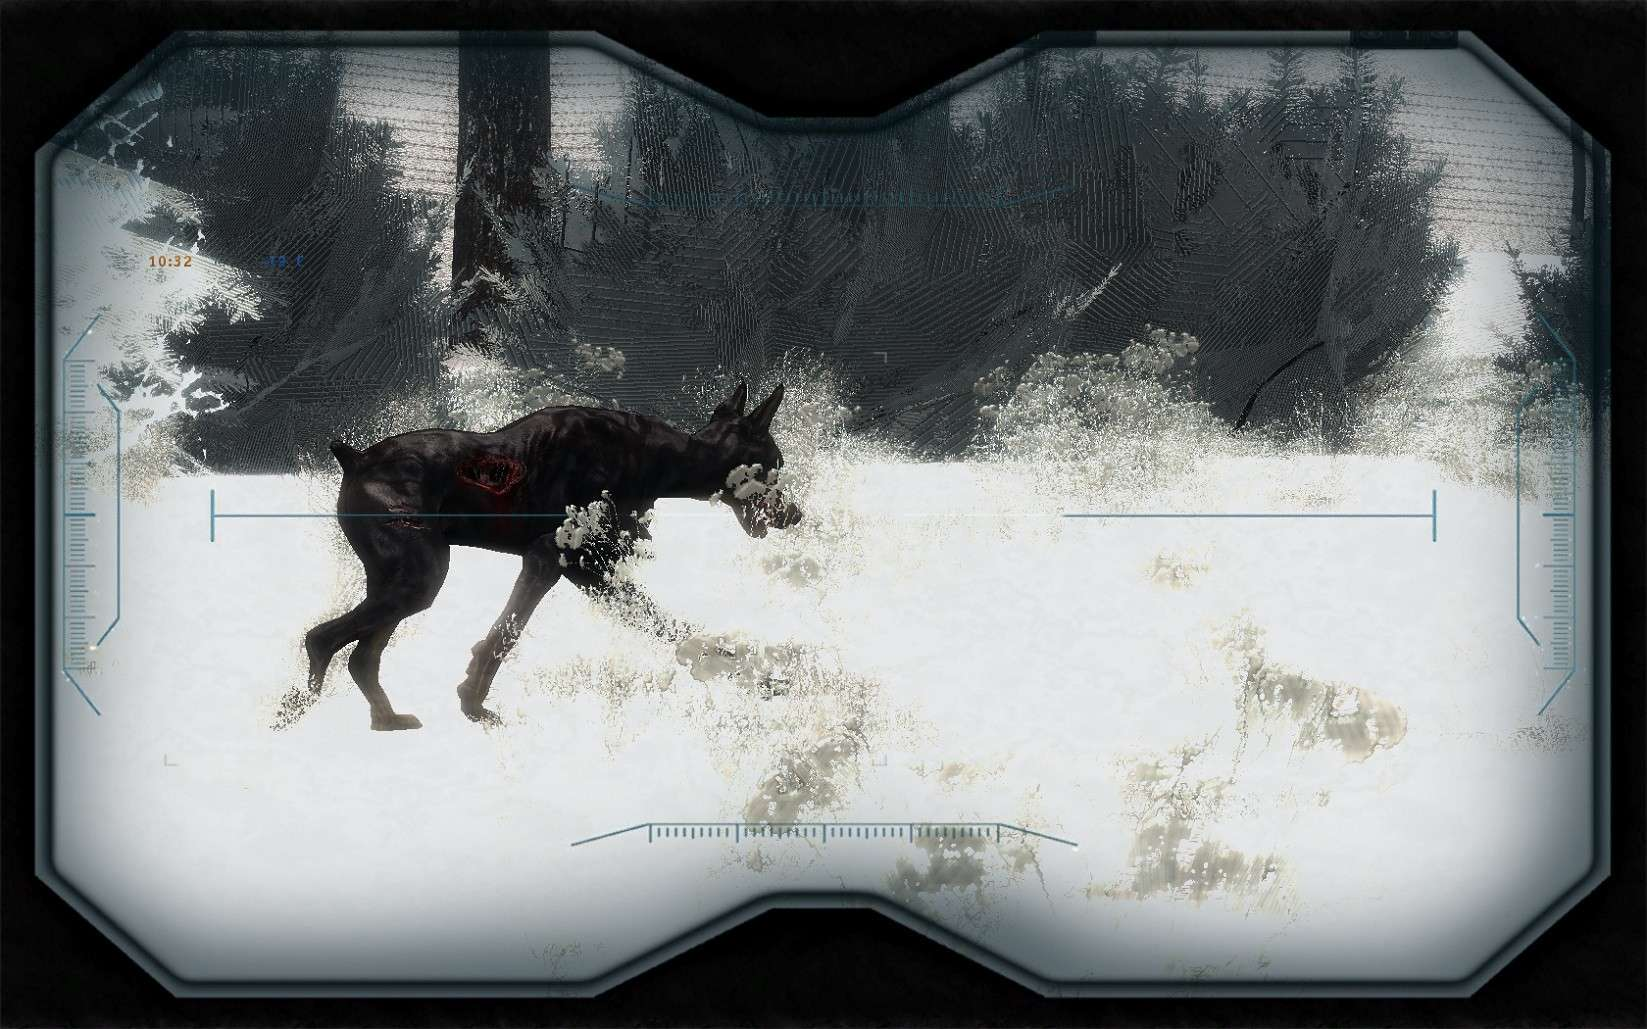 Nature Winter 2.3 Black Edition (eng 1.01 Deluxe) Images Gallery! Serie:1# Xr_3da45